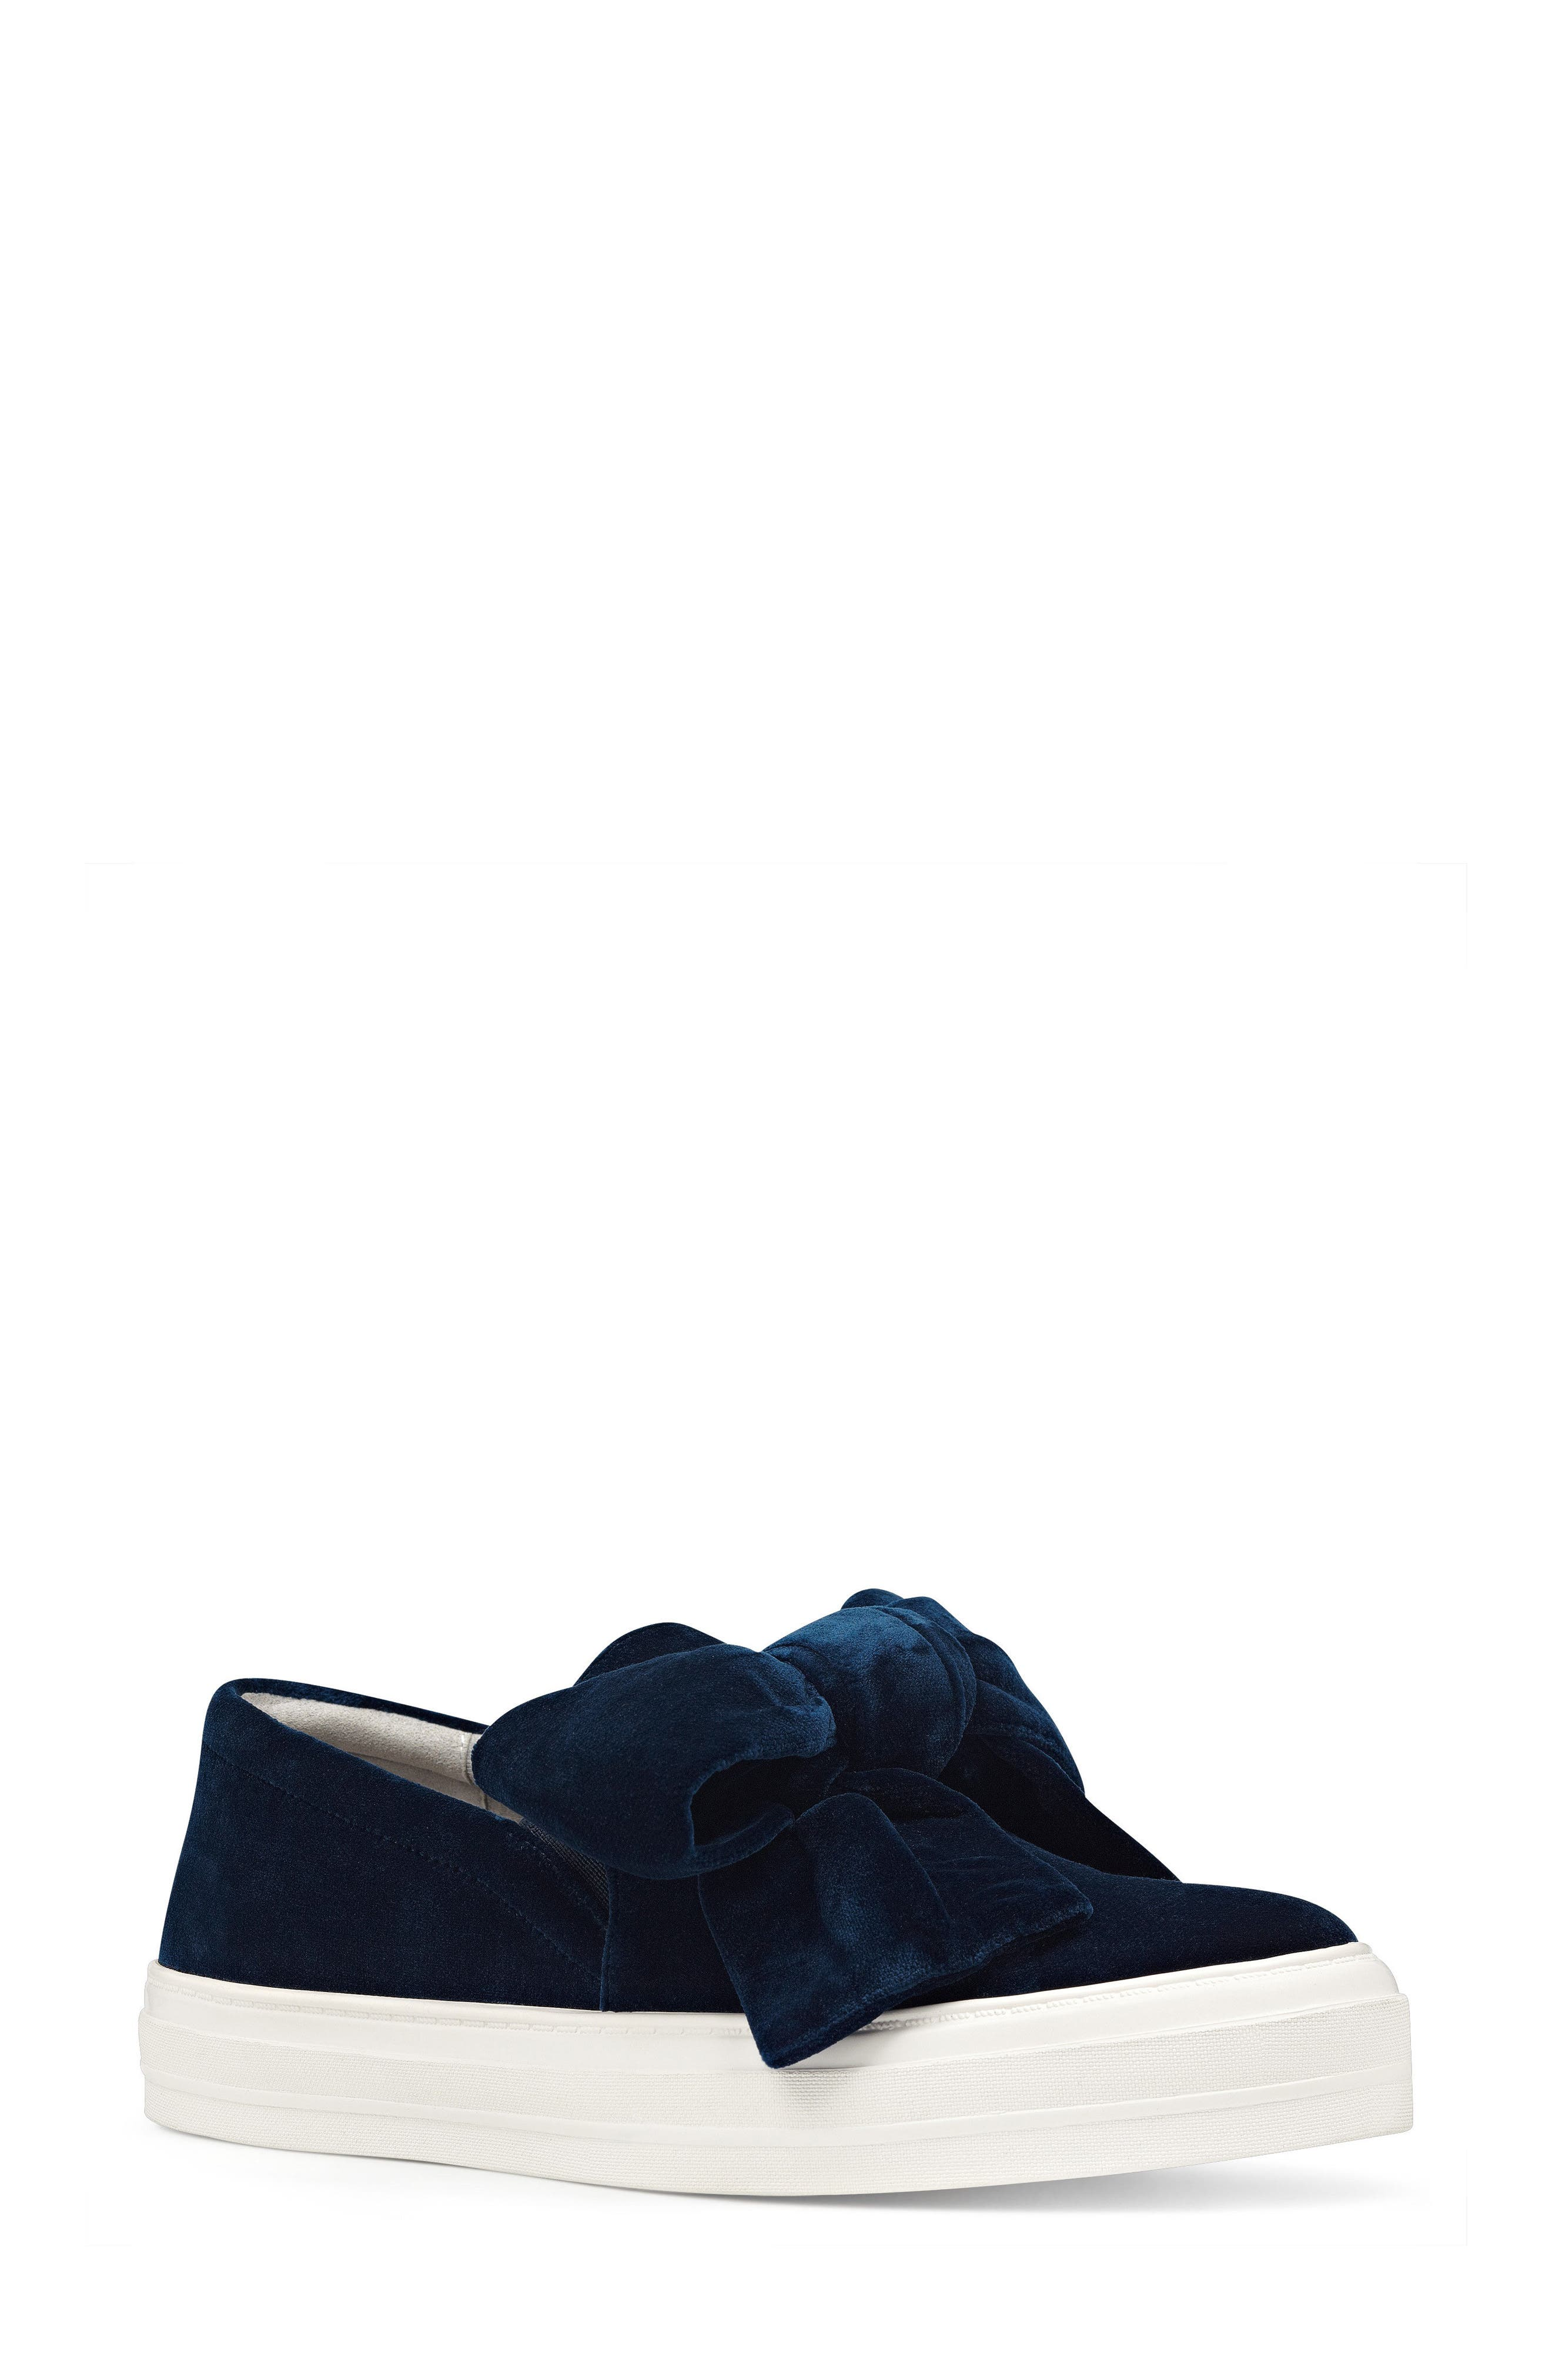 Onosha Bow Slip-On Sneaker,                             Main thumbnail 1, color,                             Navy Fabric